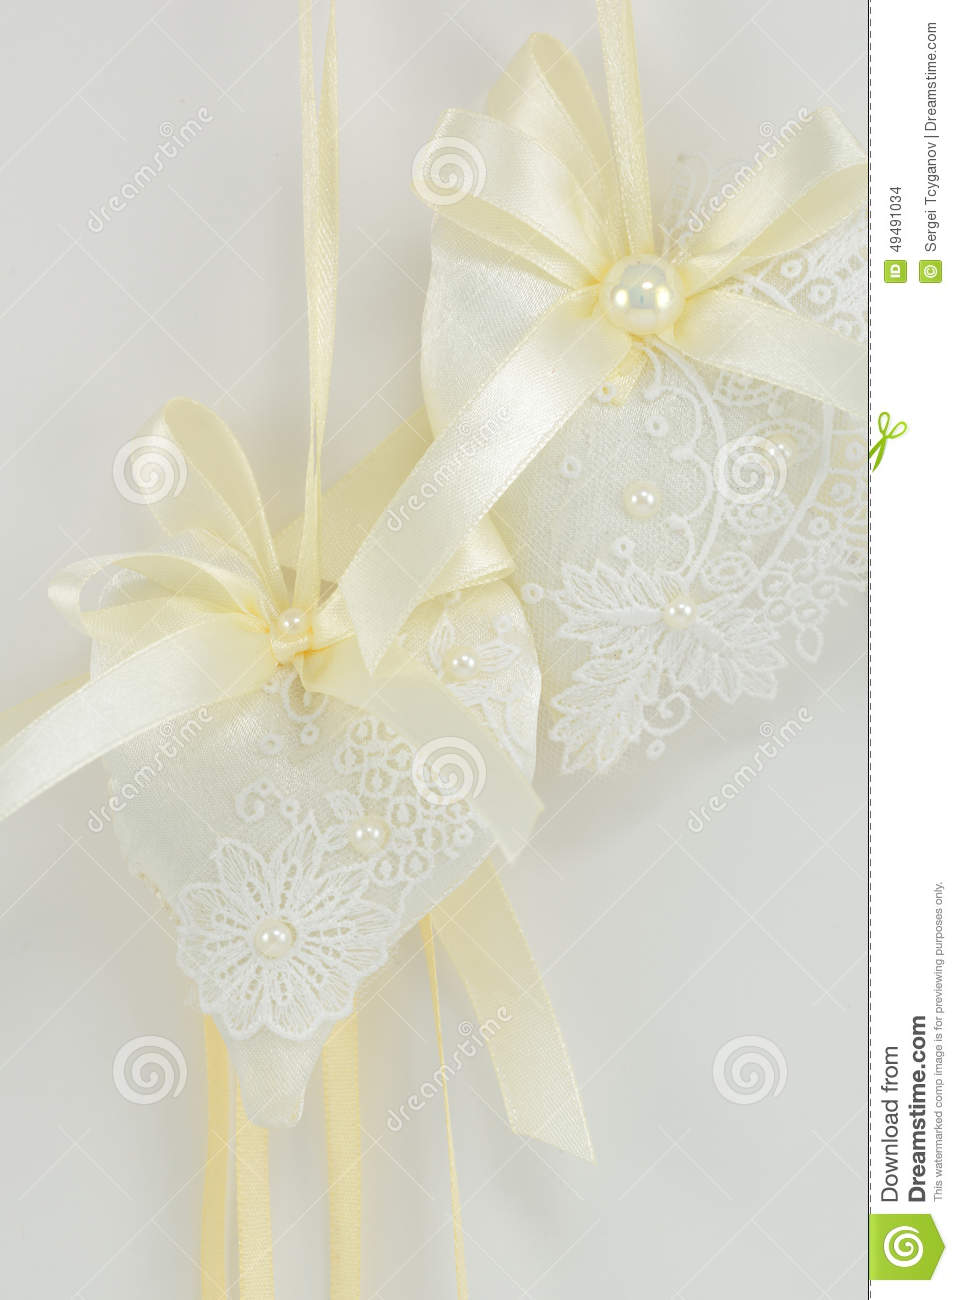 Download White hearts stock photo. Image of arrangement, burning - 49491034